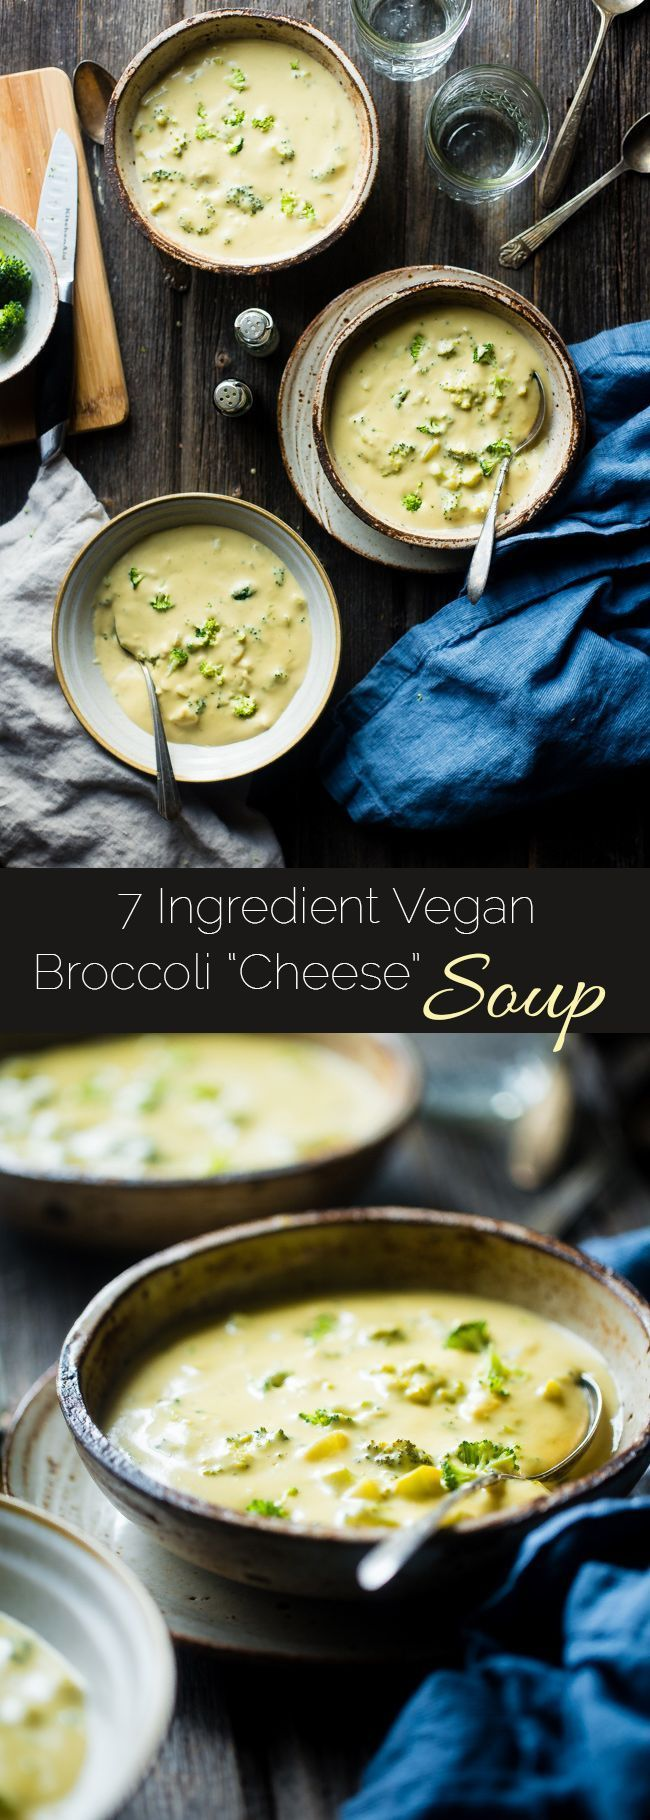 7 Ingredient Vegan Broccoli Cheese Soup - SO thick, rich and creamy you would never know it's dairy free, gluten free and healthy! It's ready in only 15 minutes and SO easy to make!